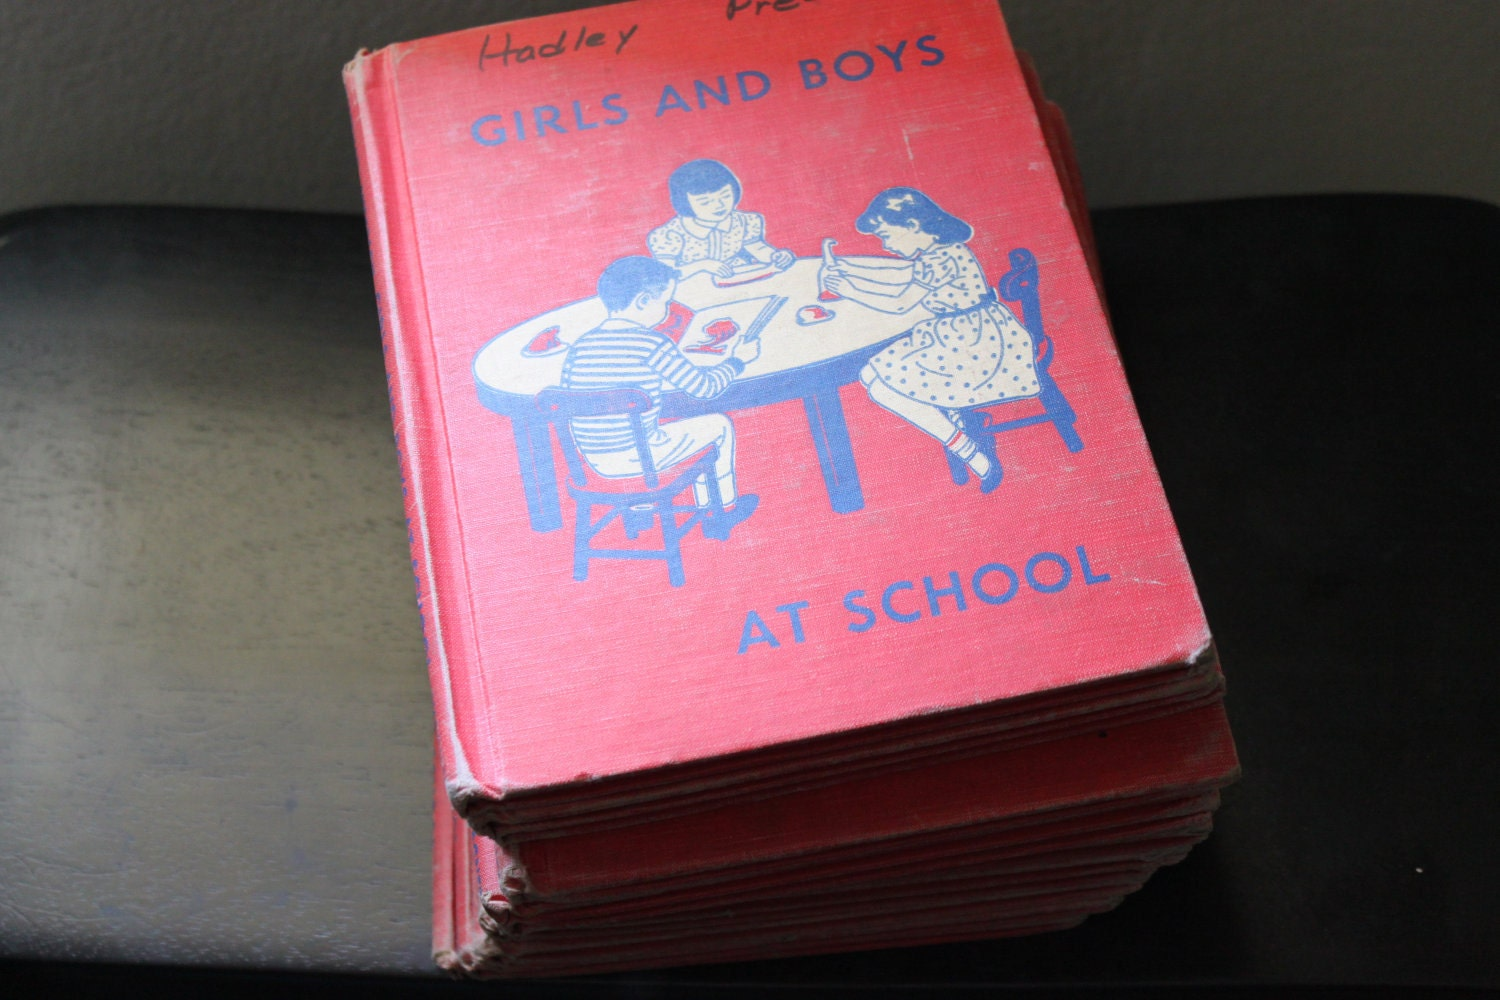 1956 Vintage Children's Book Girls And Boys At School - CultureShoppe